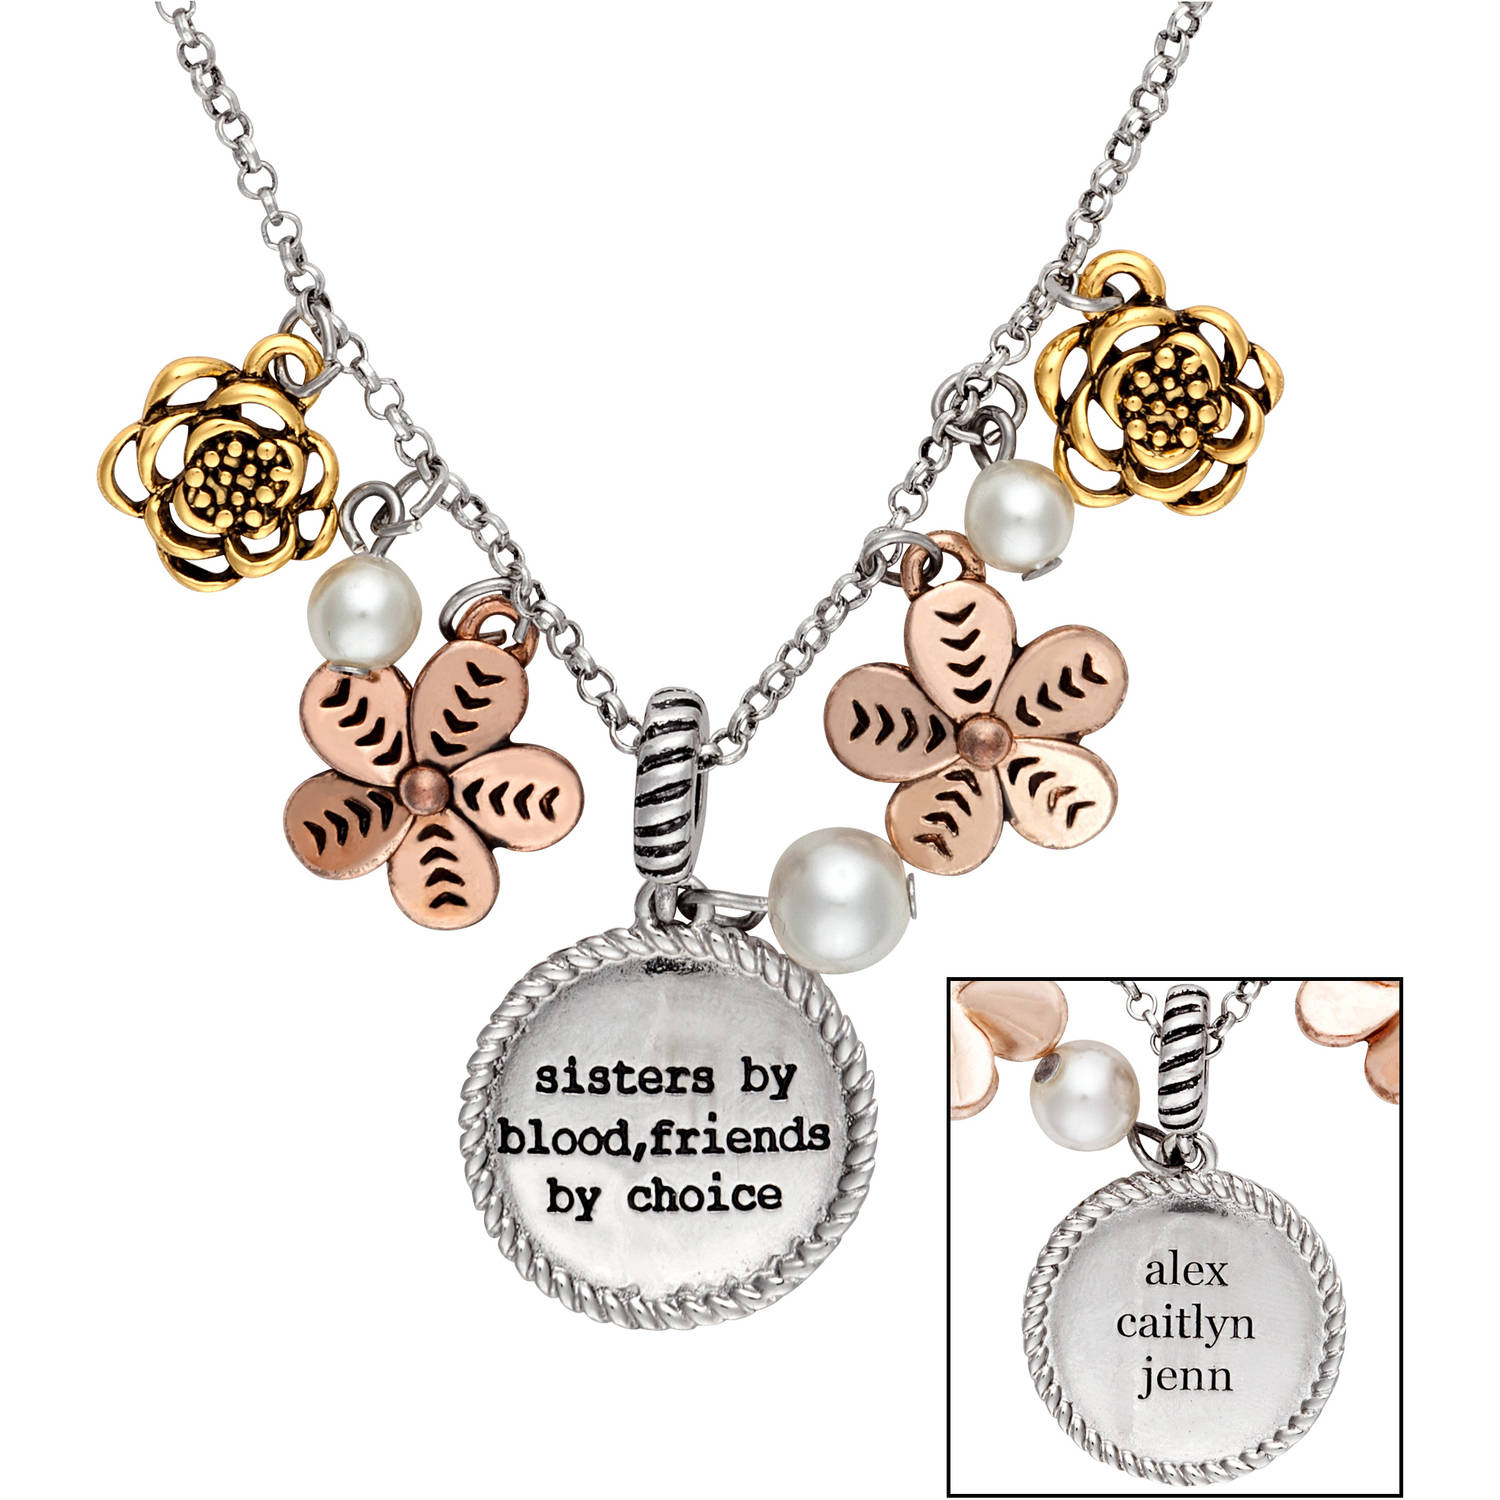 Personalized Tri-Color Sister's Sandra Magsamen Engraved Pendant, 18""